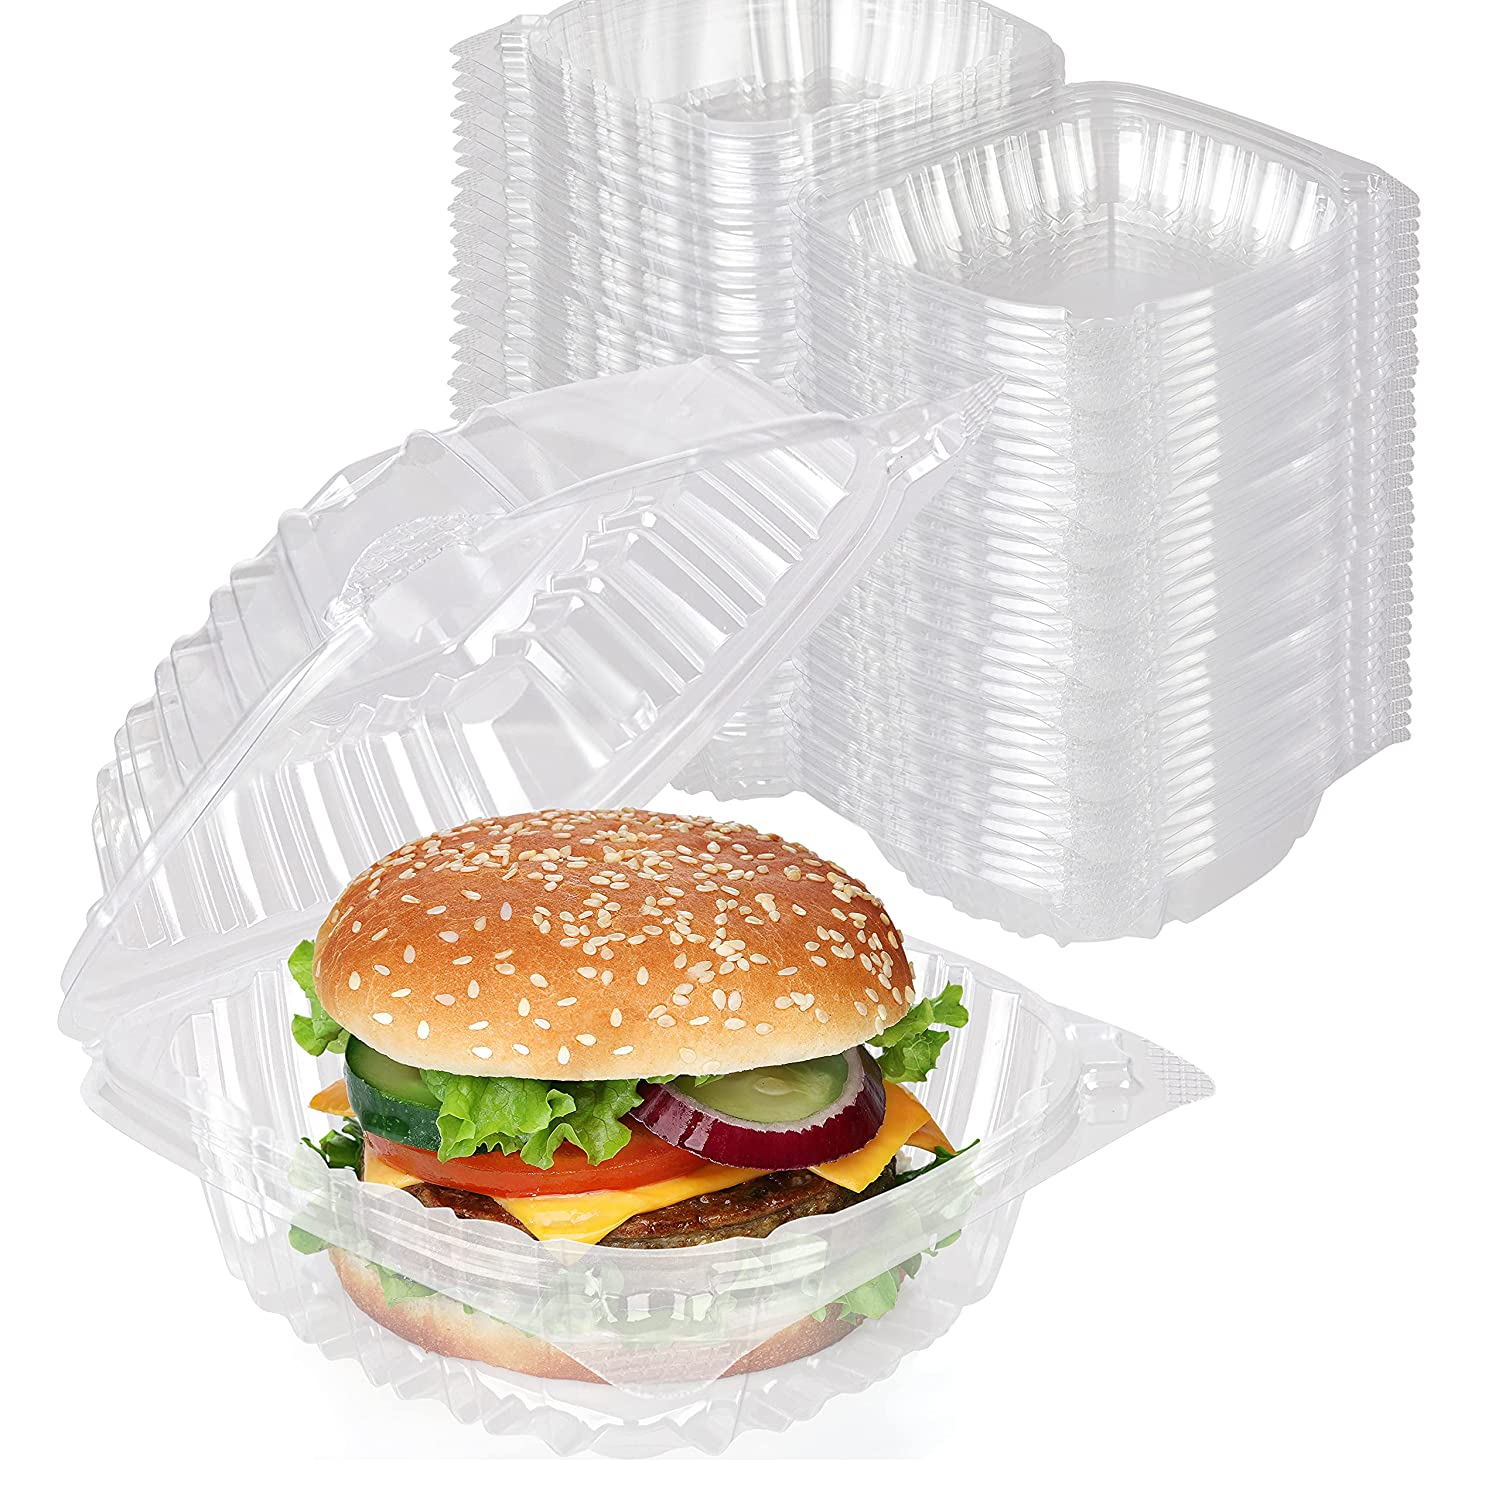 Stock Your Home Plastic 5 x 5 Inch Clamshell Takeout Trays (100 Pack) - Dessert Containers - Plastic Hinged Food Container - Disposable Plastic to Go Boxes for Salads, Pasta, Sandwiches